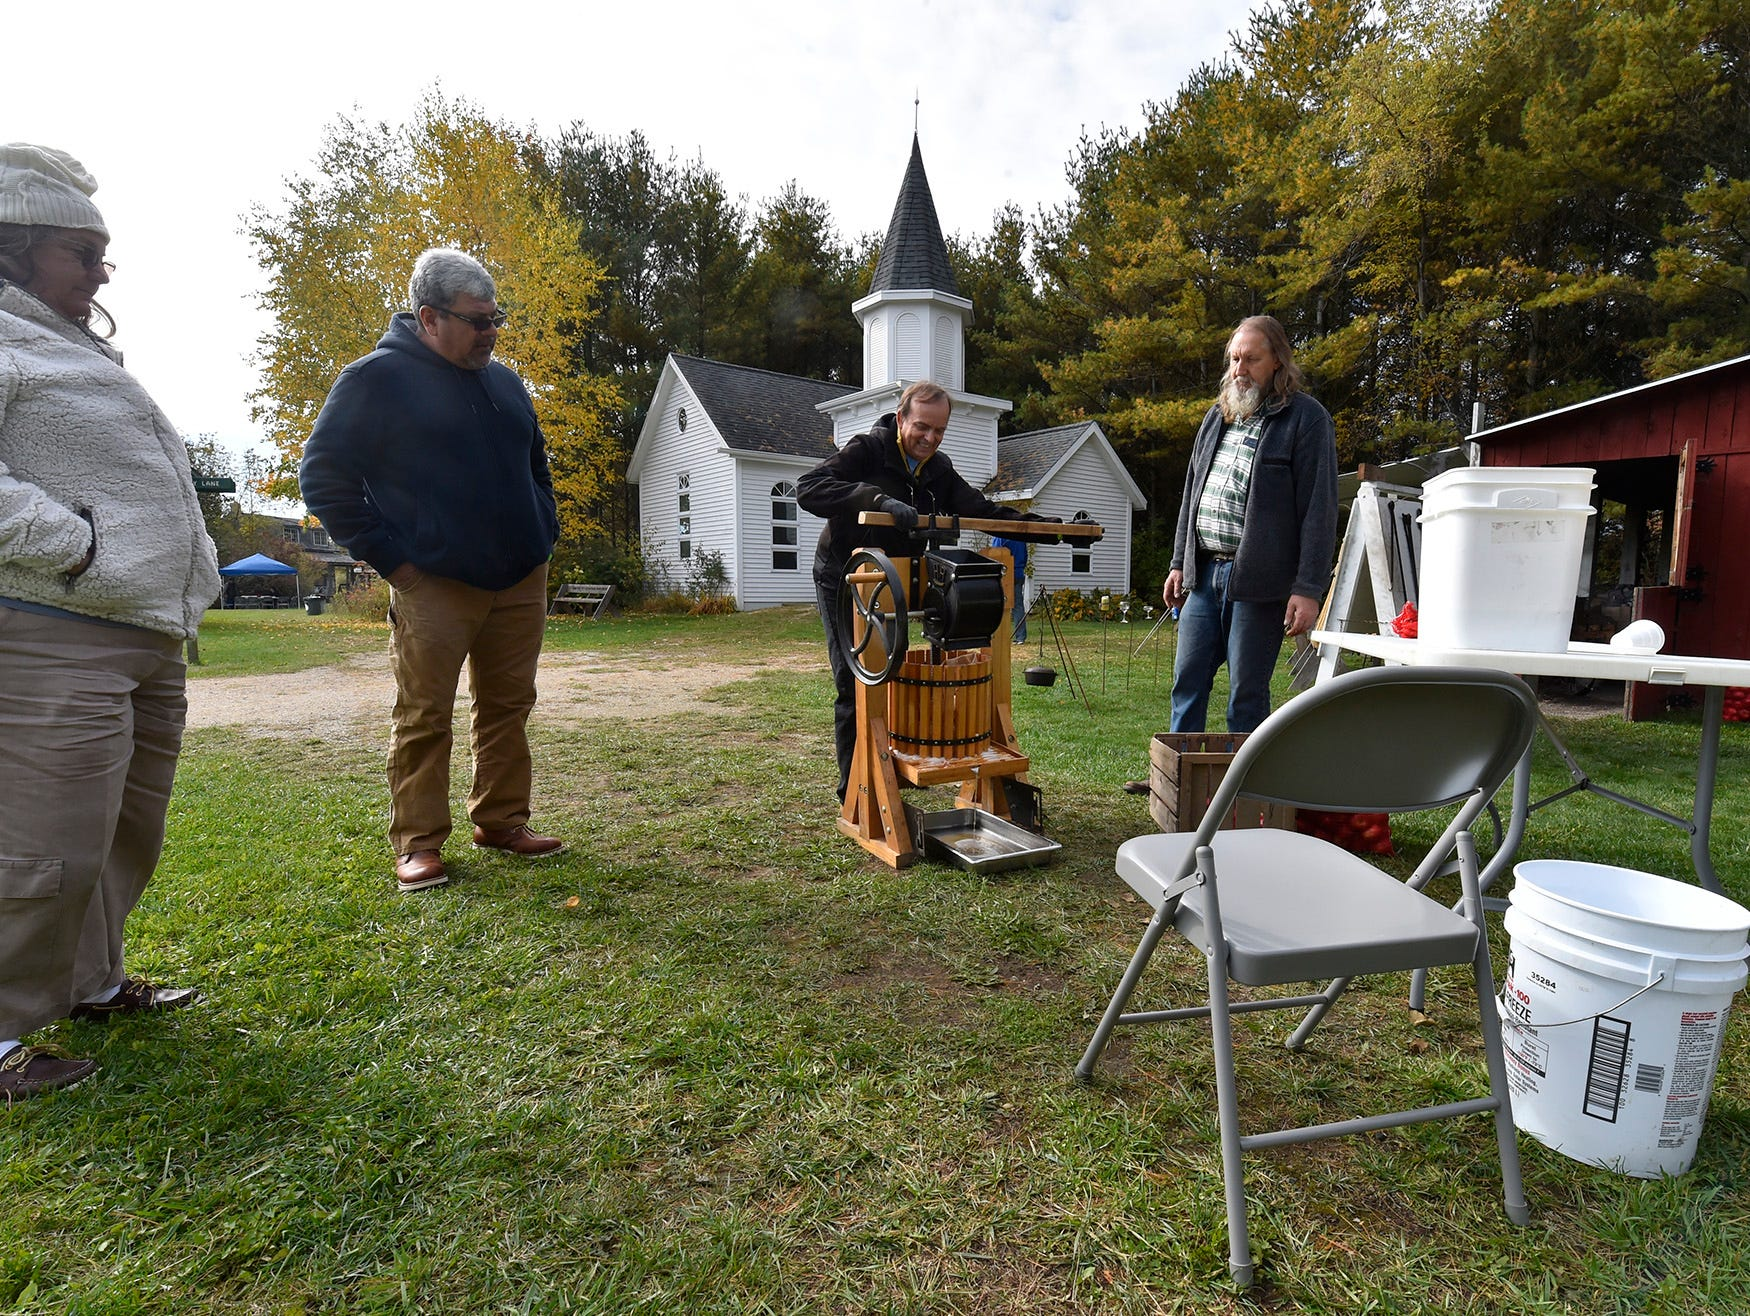 Larry Stuth, right, instructs visitors how to work an apple press to make cider including David Wester of Sturgeon Bay/Miami during Apple Day at Heritage Village at Big Creek in Sturgeon Bay on Oct. 13, 2018. Tina M. Gohr/USA TODAY NETWORK-Wisconsin